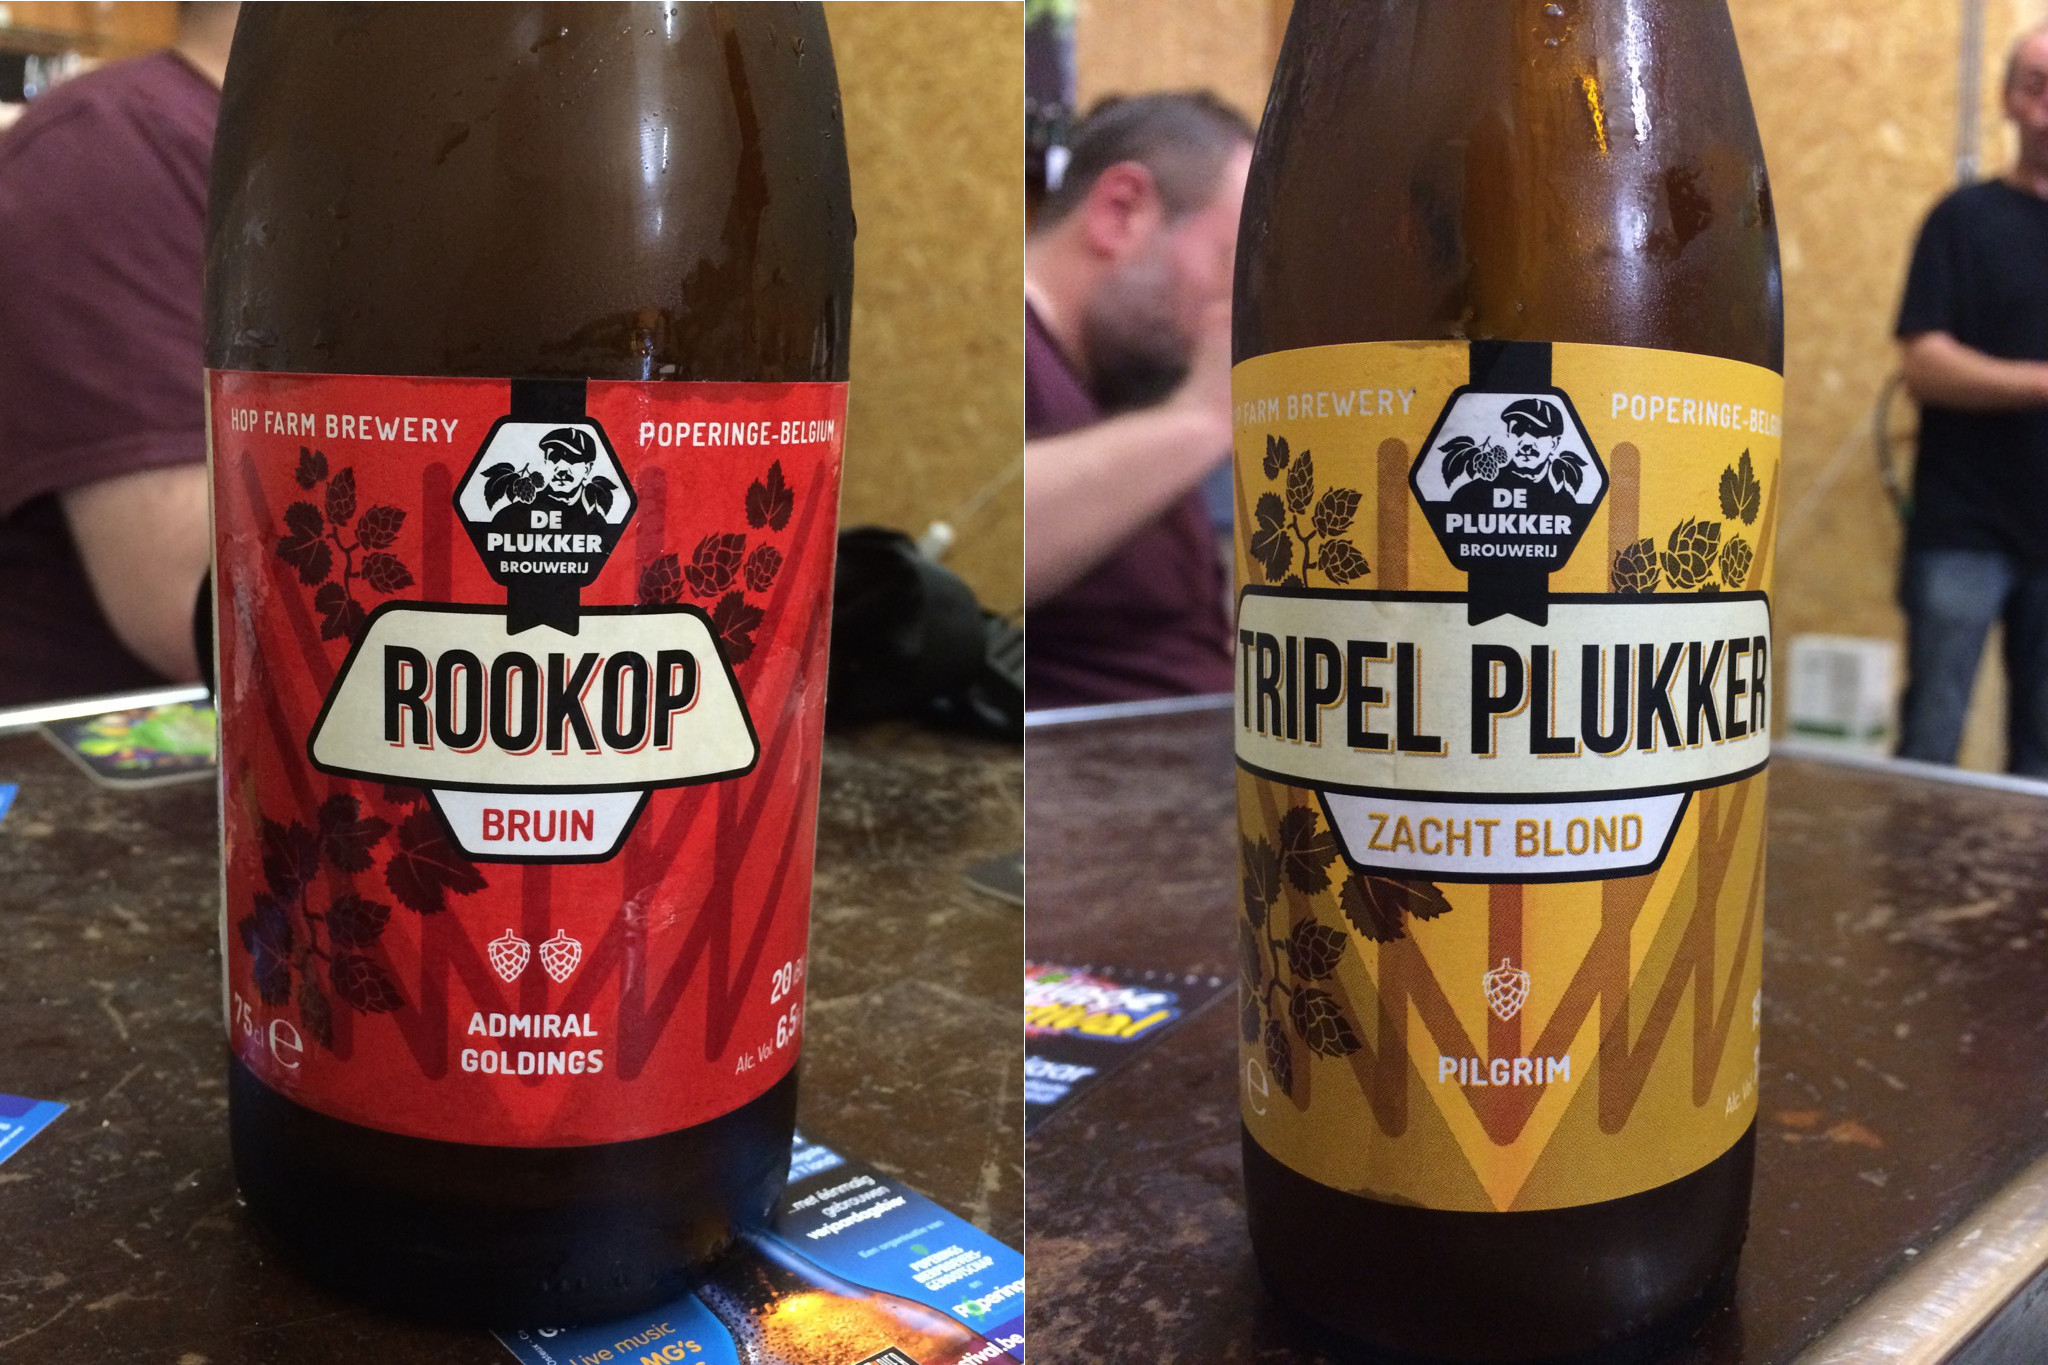 Rookop and Triple Plukker – De Plukker